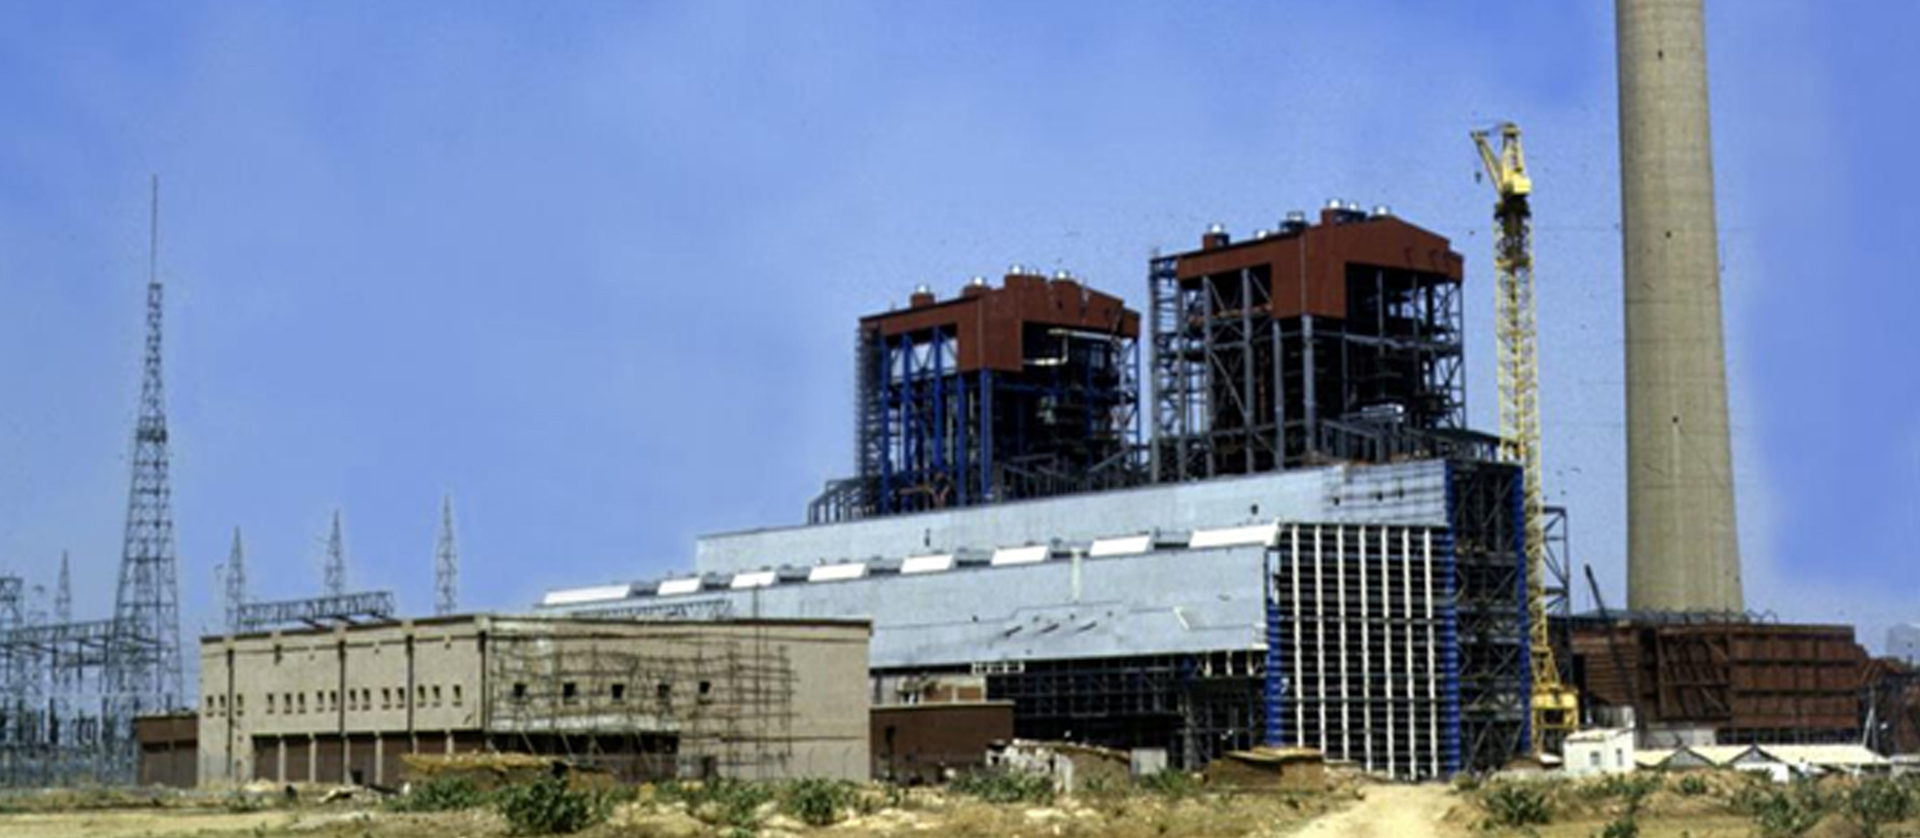 Super Thermal Power Station: Rihand, Uttar Pradesh